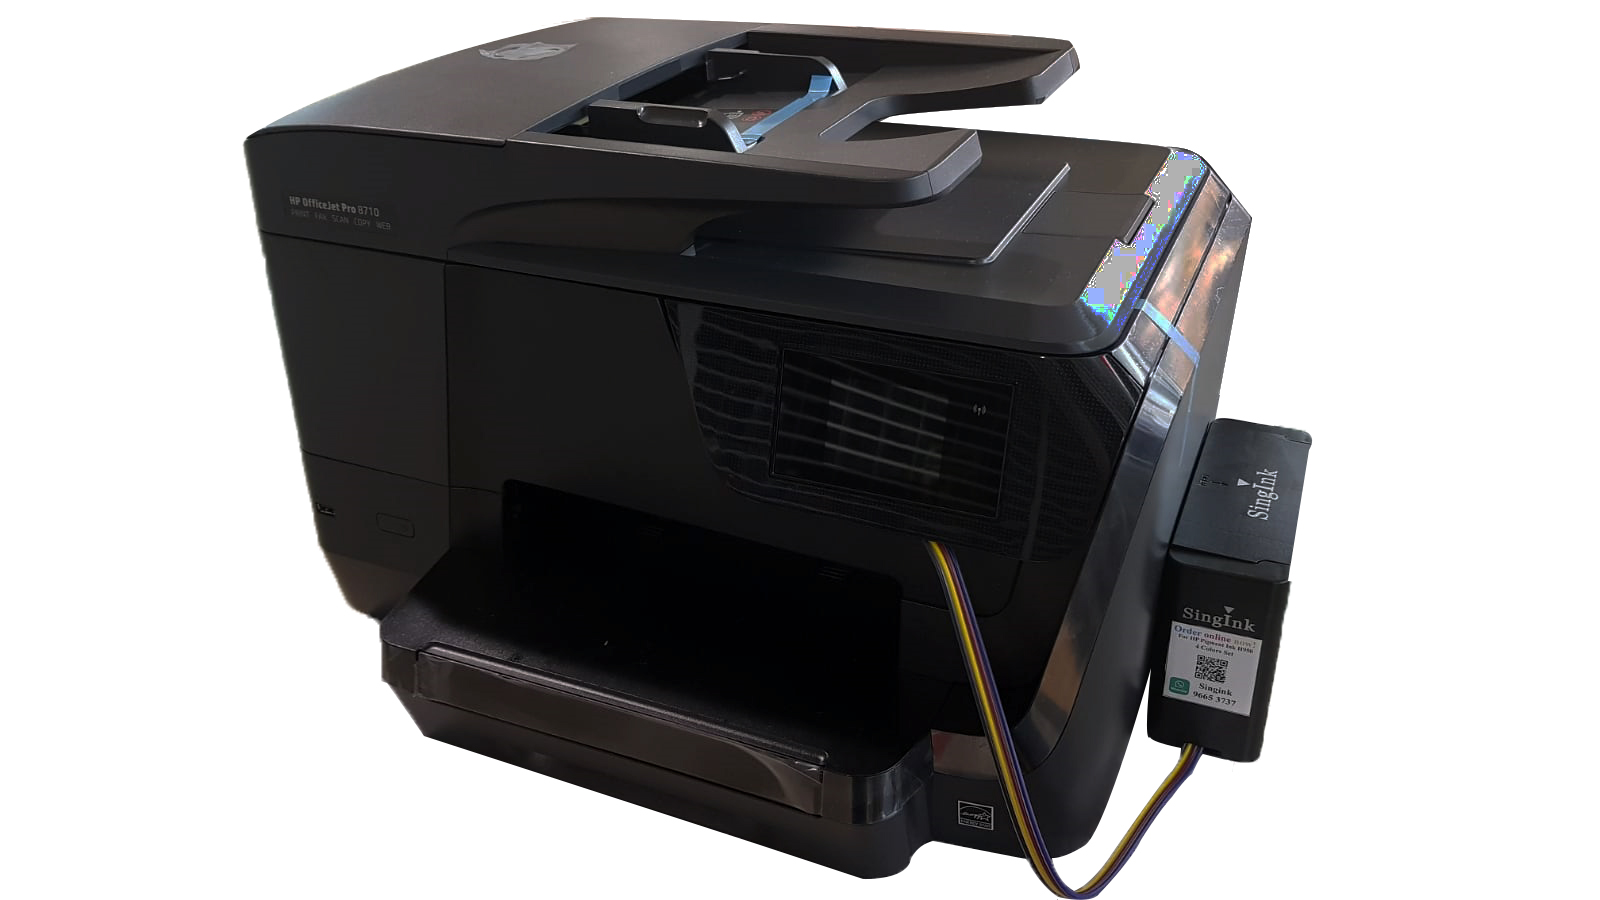 Printer Hp Officejet Pro 8710 With Ink Tank System Singink